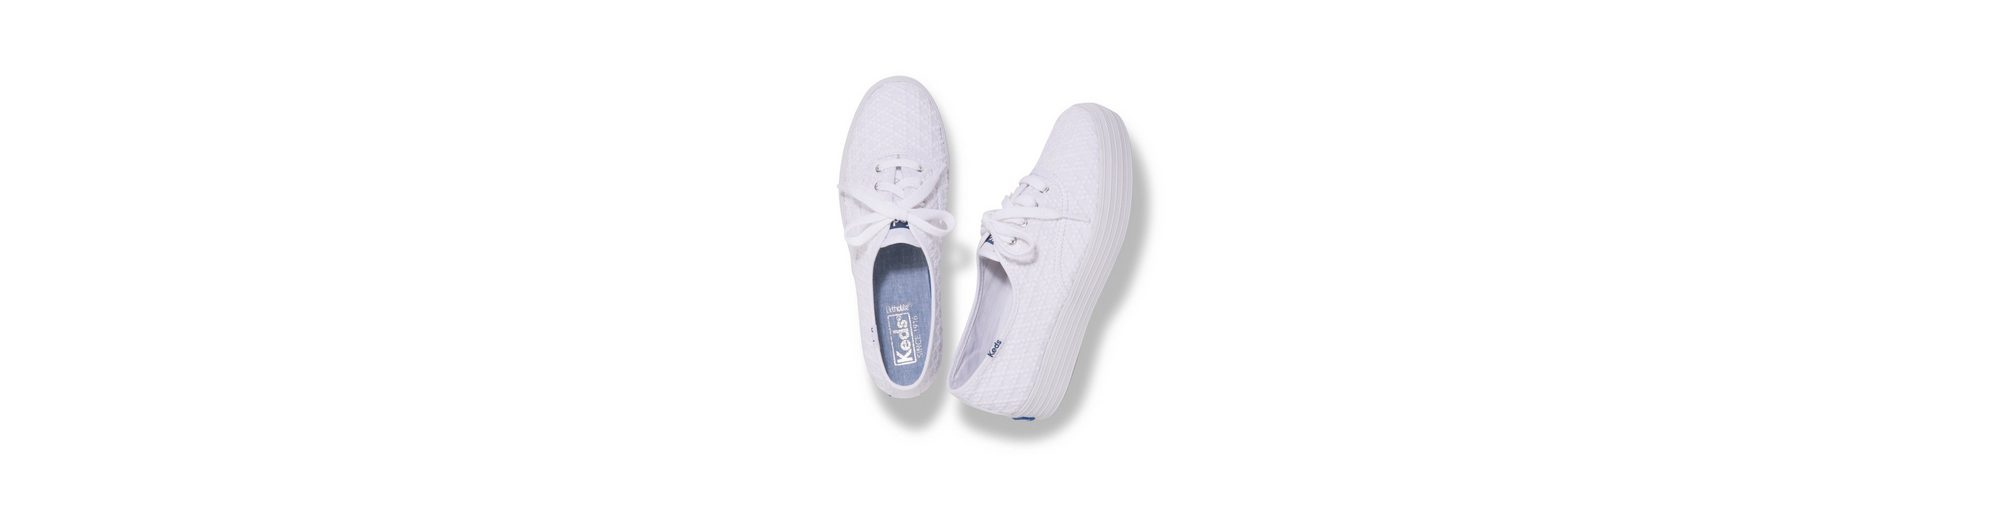 Plateausneaker Embroidered Embroidered Keds Triple Keds Triangle Triple wP7vC4nq